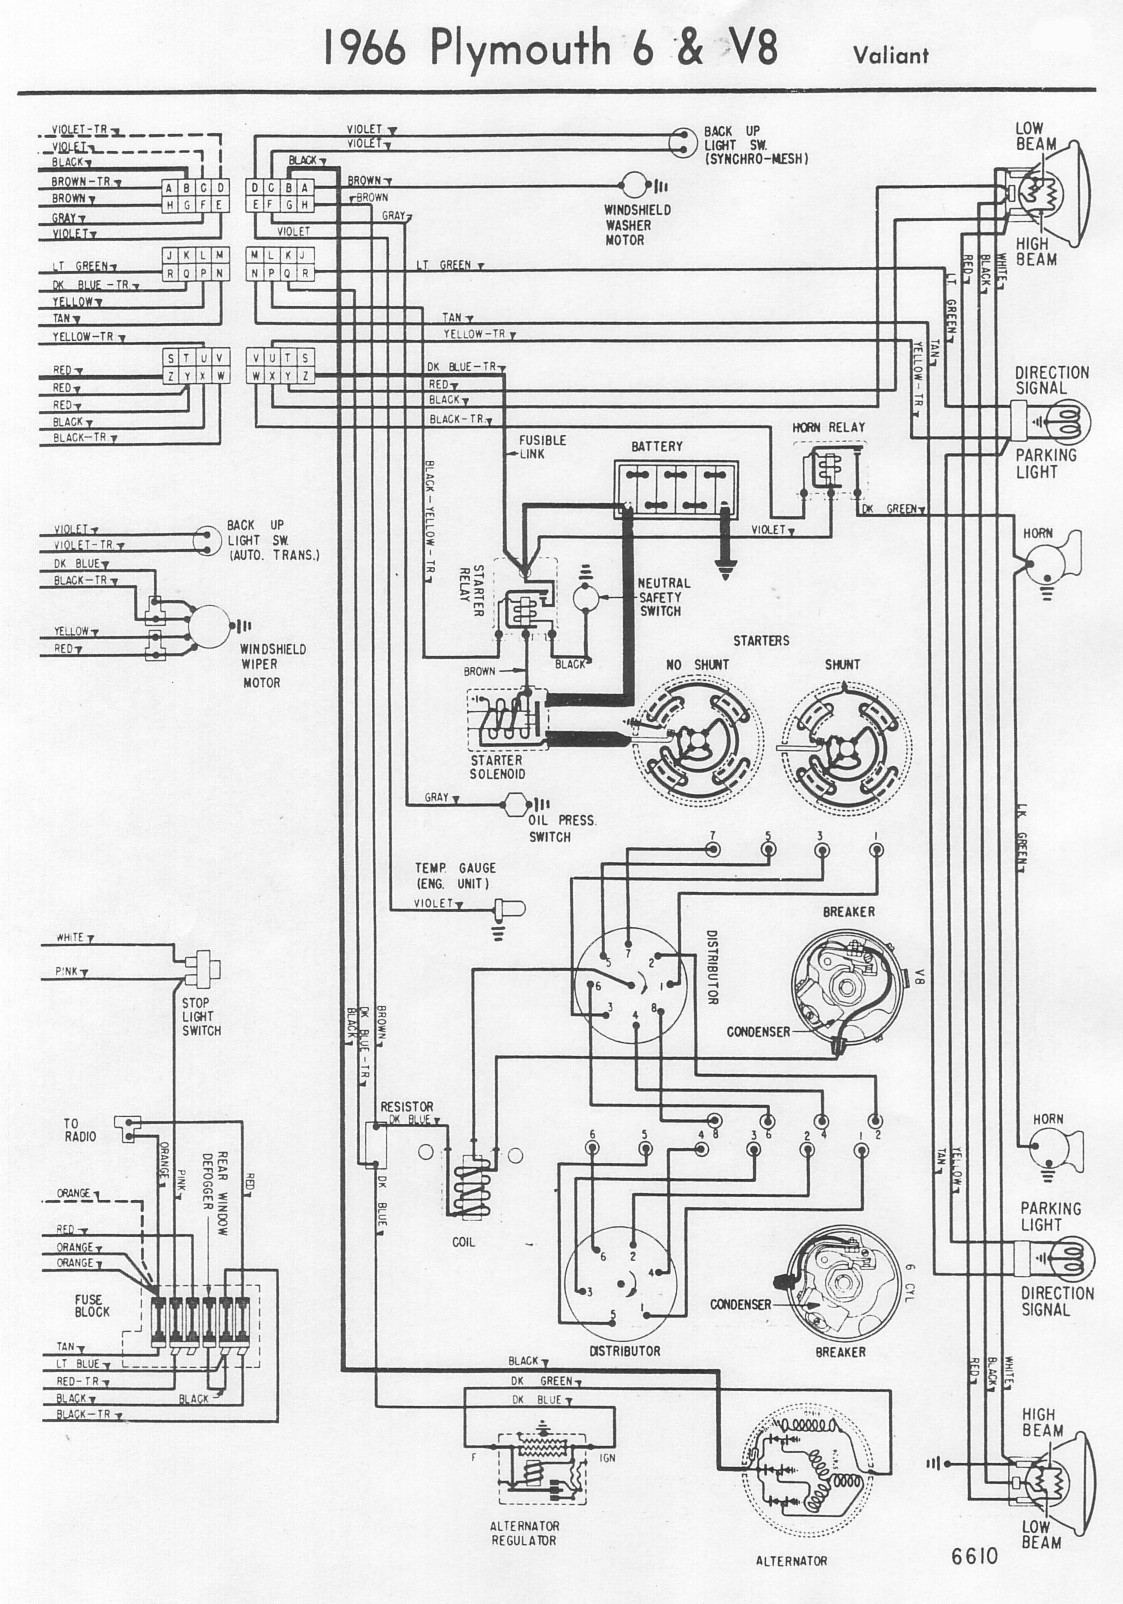 66ValiantB wiring diagrams 1968 Ford Falcon Wiring Diagram at panicattacktreatment.co